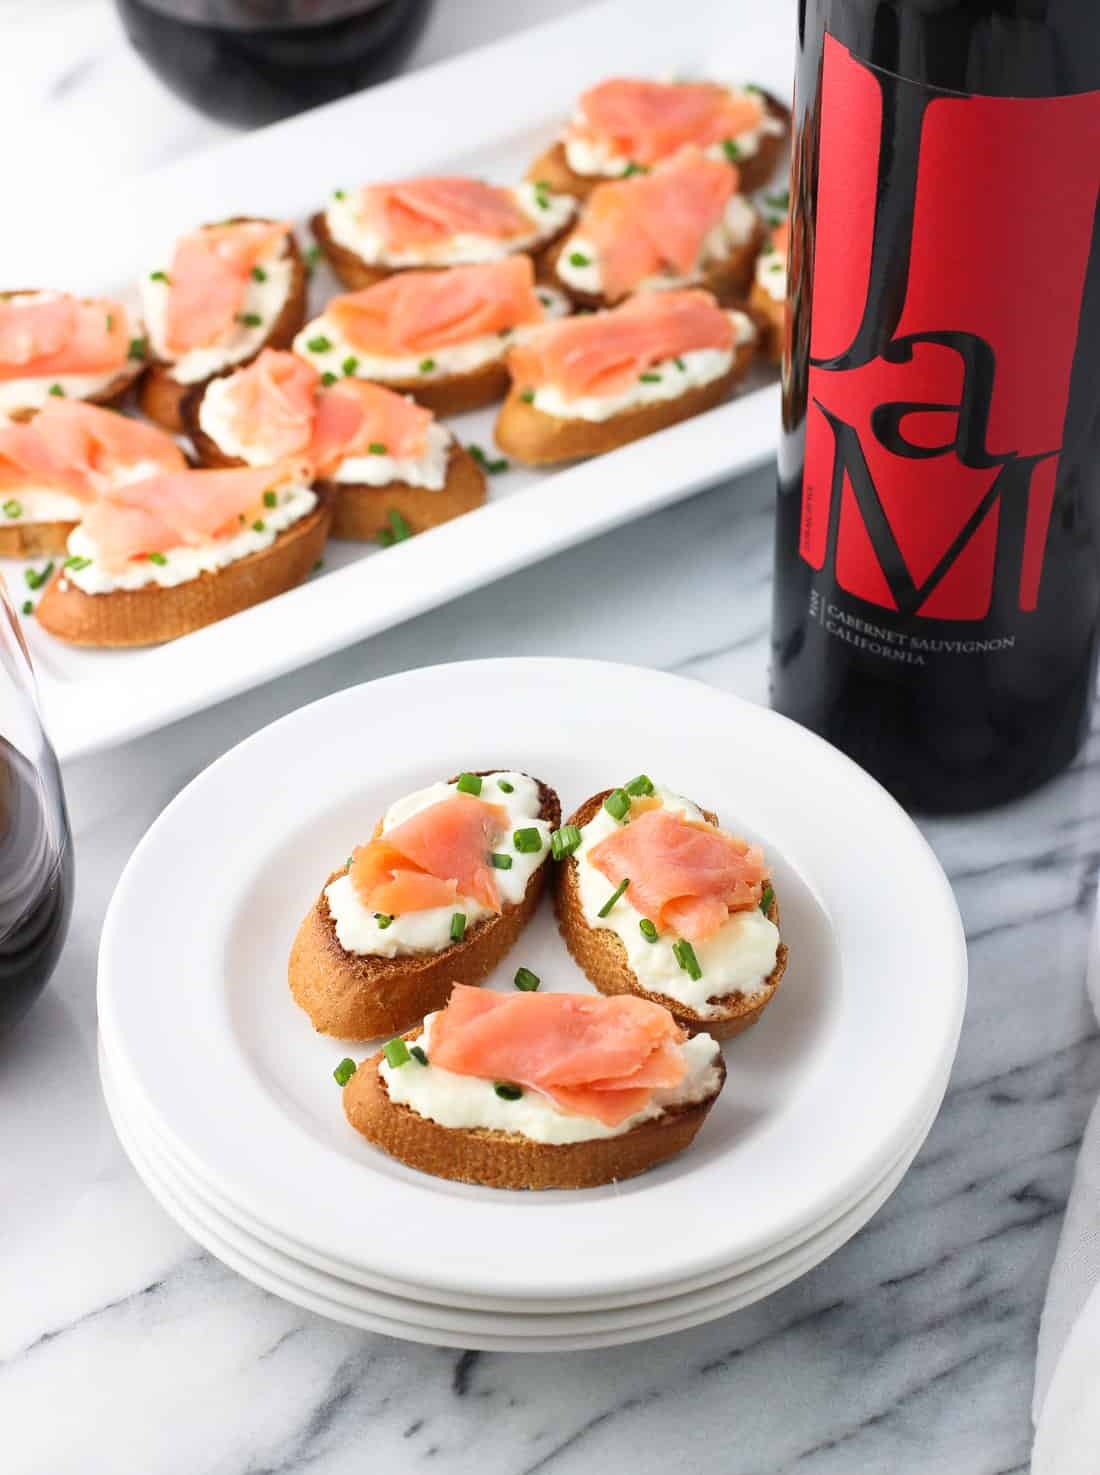 Crostini topped with burrata and a slice of smoked salmon on a plate next to a bottle of wine and the tray.